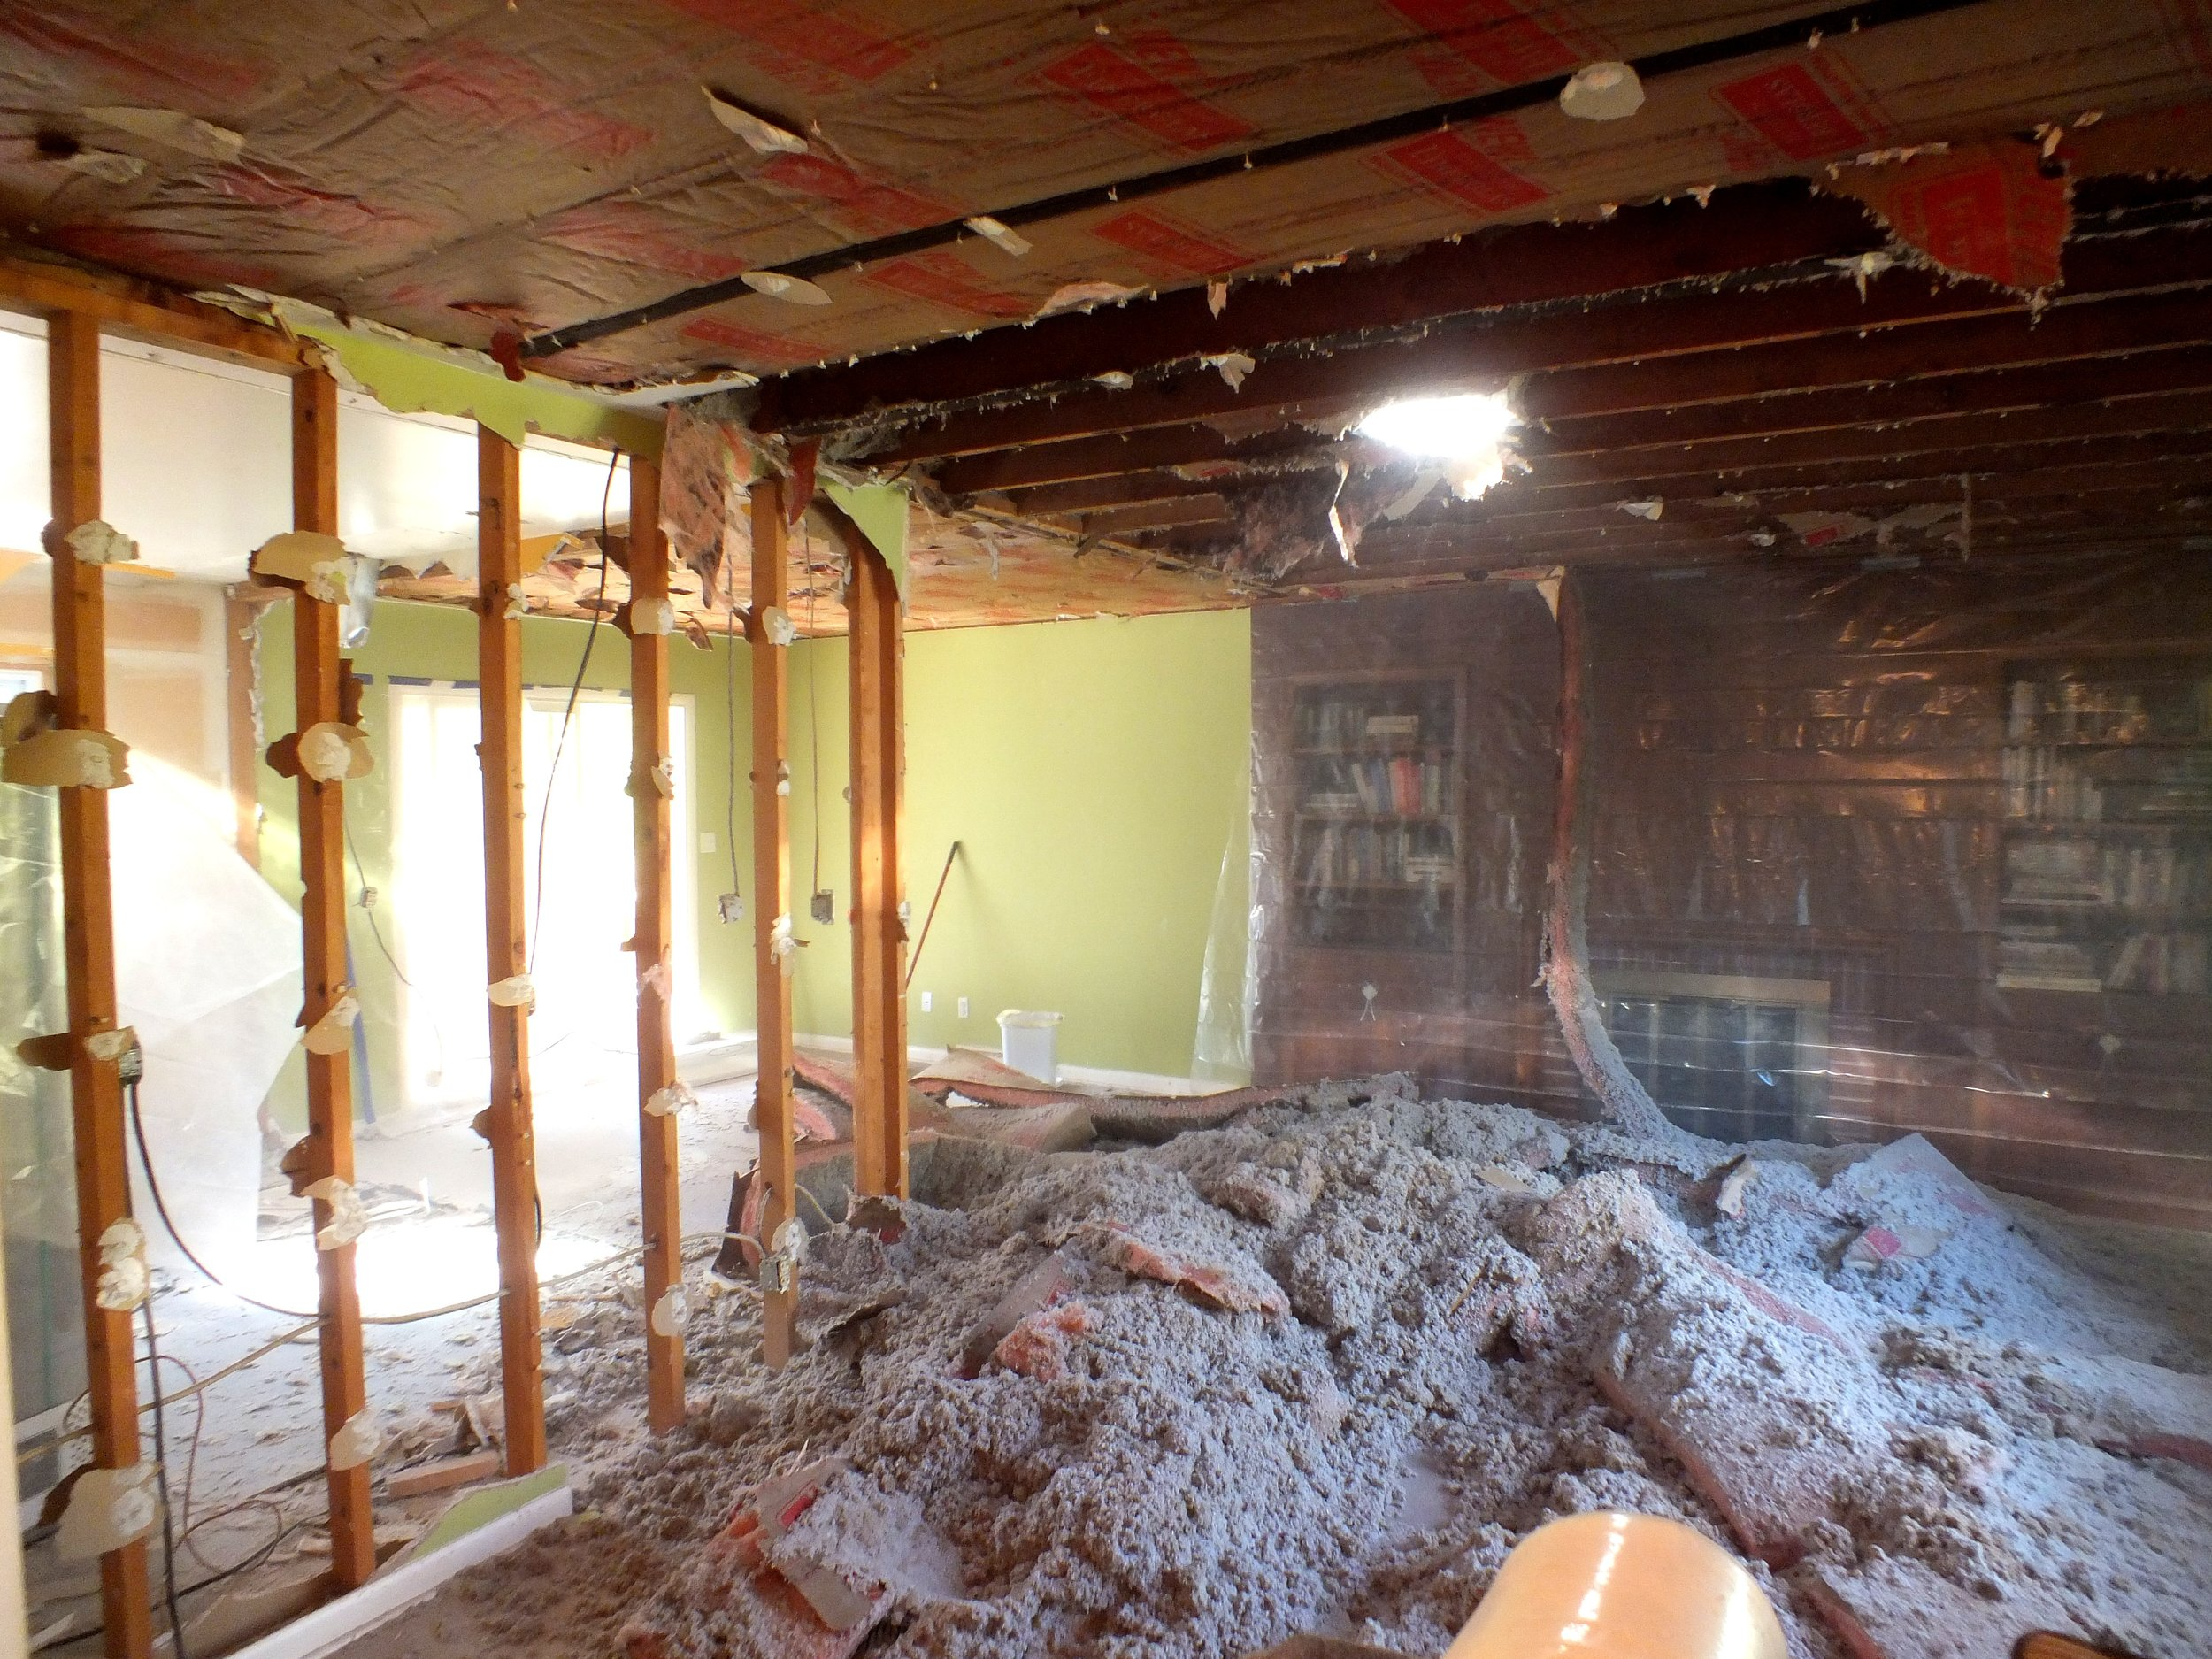 Renovations are messy, emotional, expensive and filled with a million decisions. You need a great team: you, designer, and contractor.